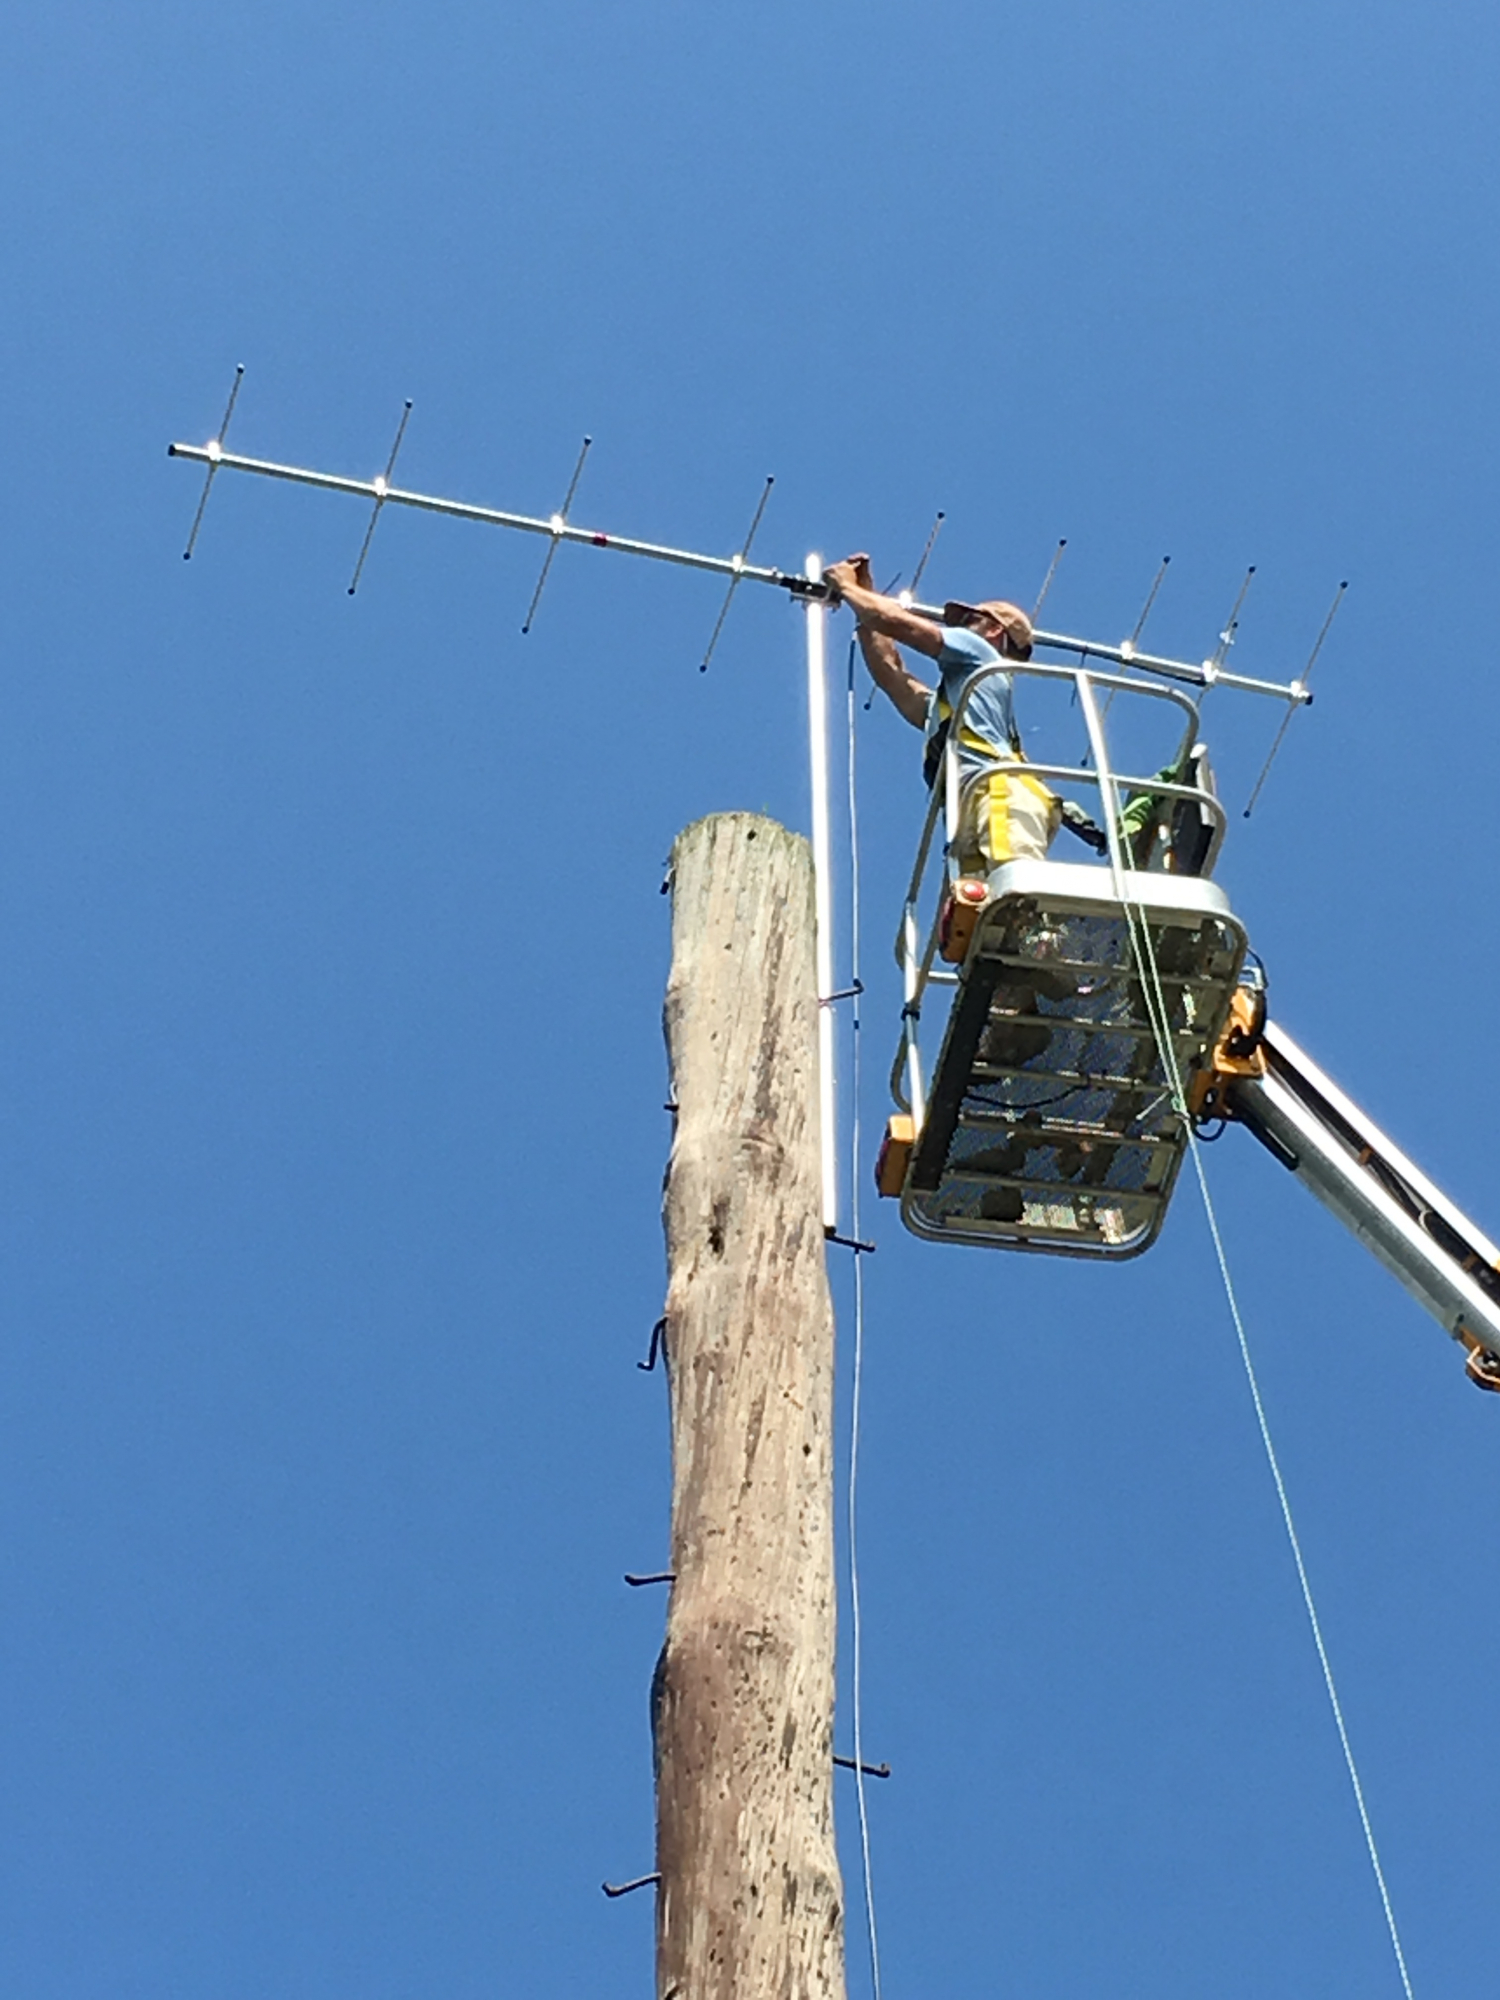 Todd Alleger works on a receiver station from a rented cherry picker in Blue Marsh and Waggoner's Gap, PA.